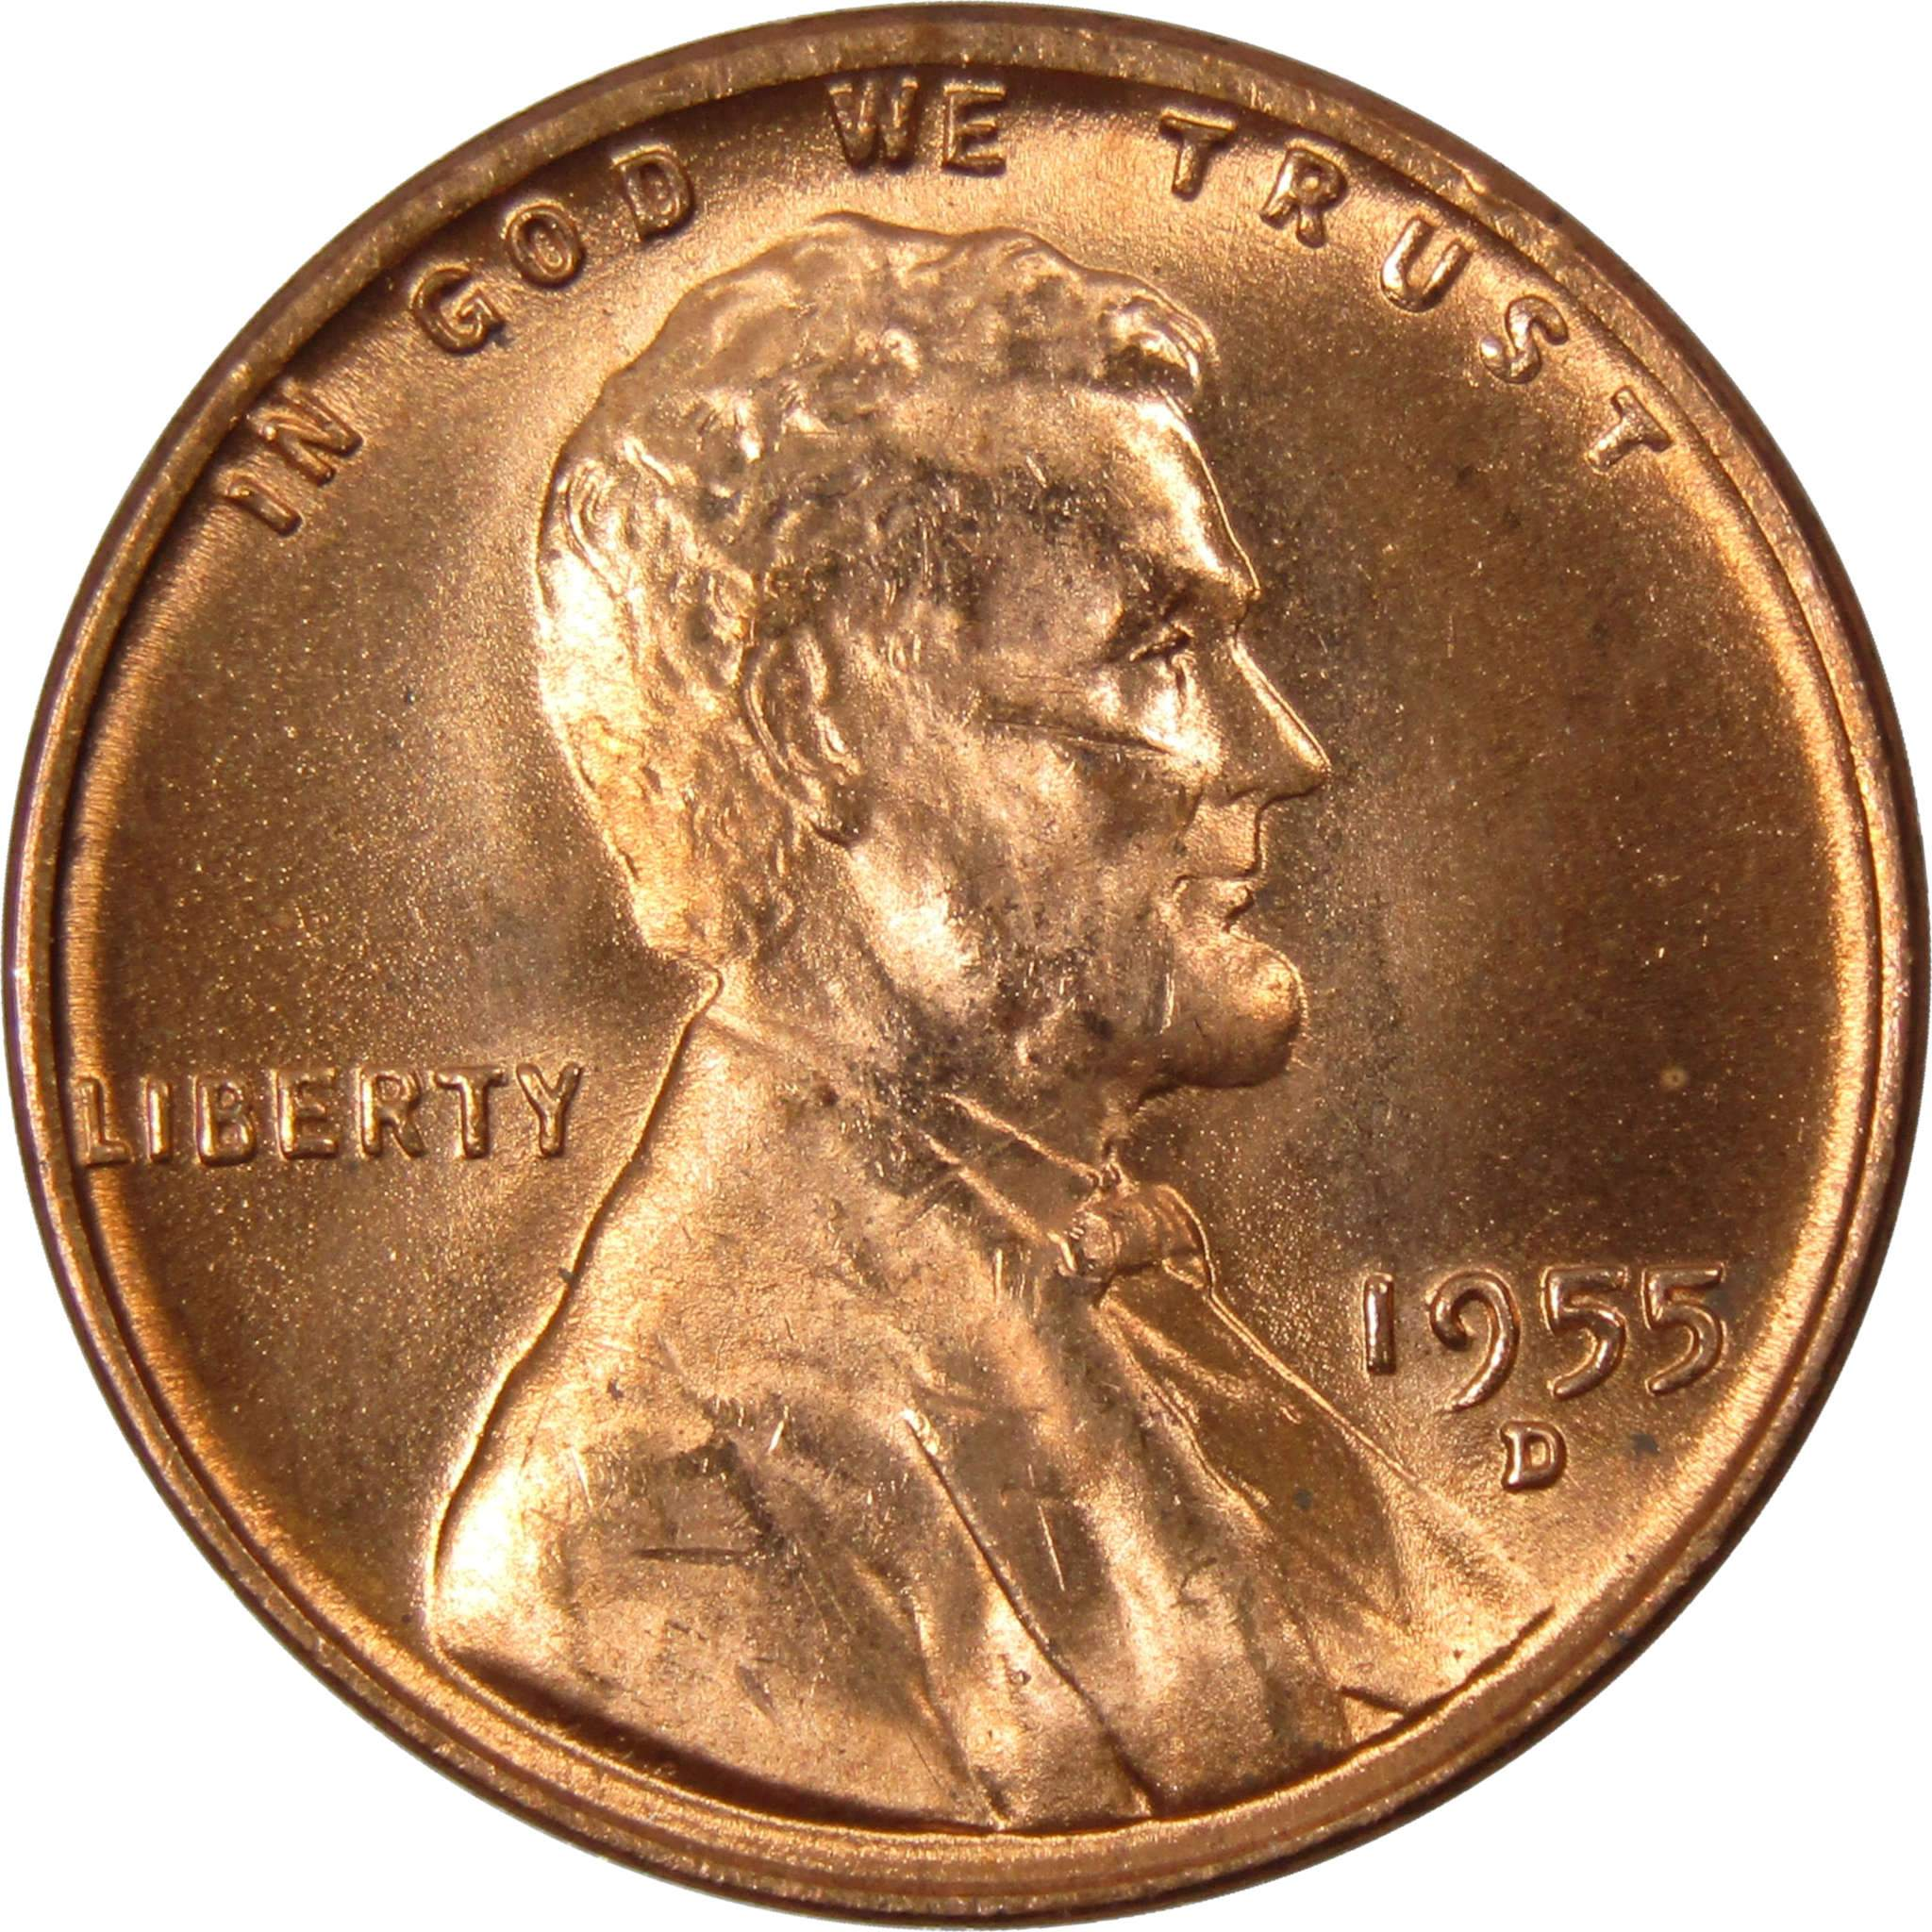 1955 D 1c Lincoln Wheat Cent Penny US Coin BU Uncirculated Mint State